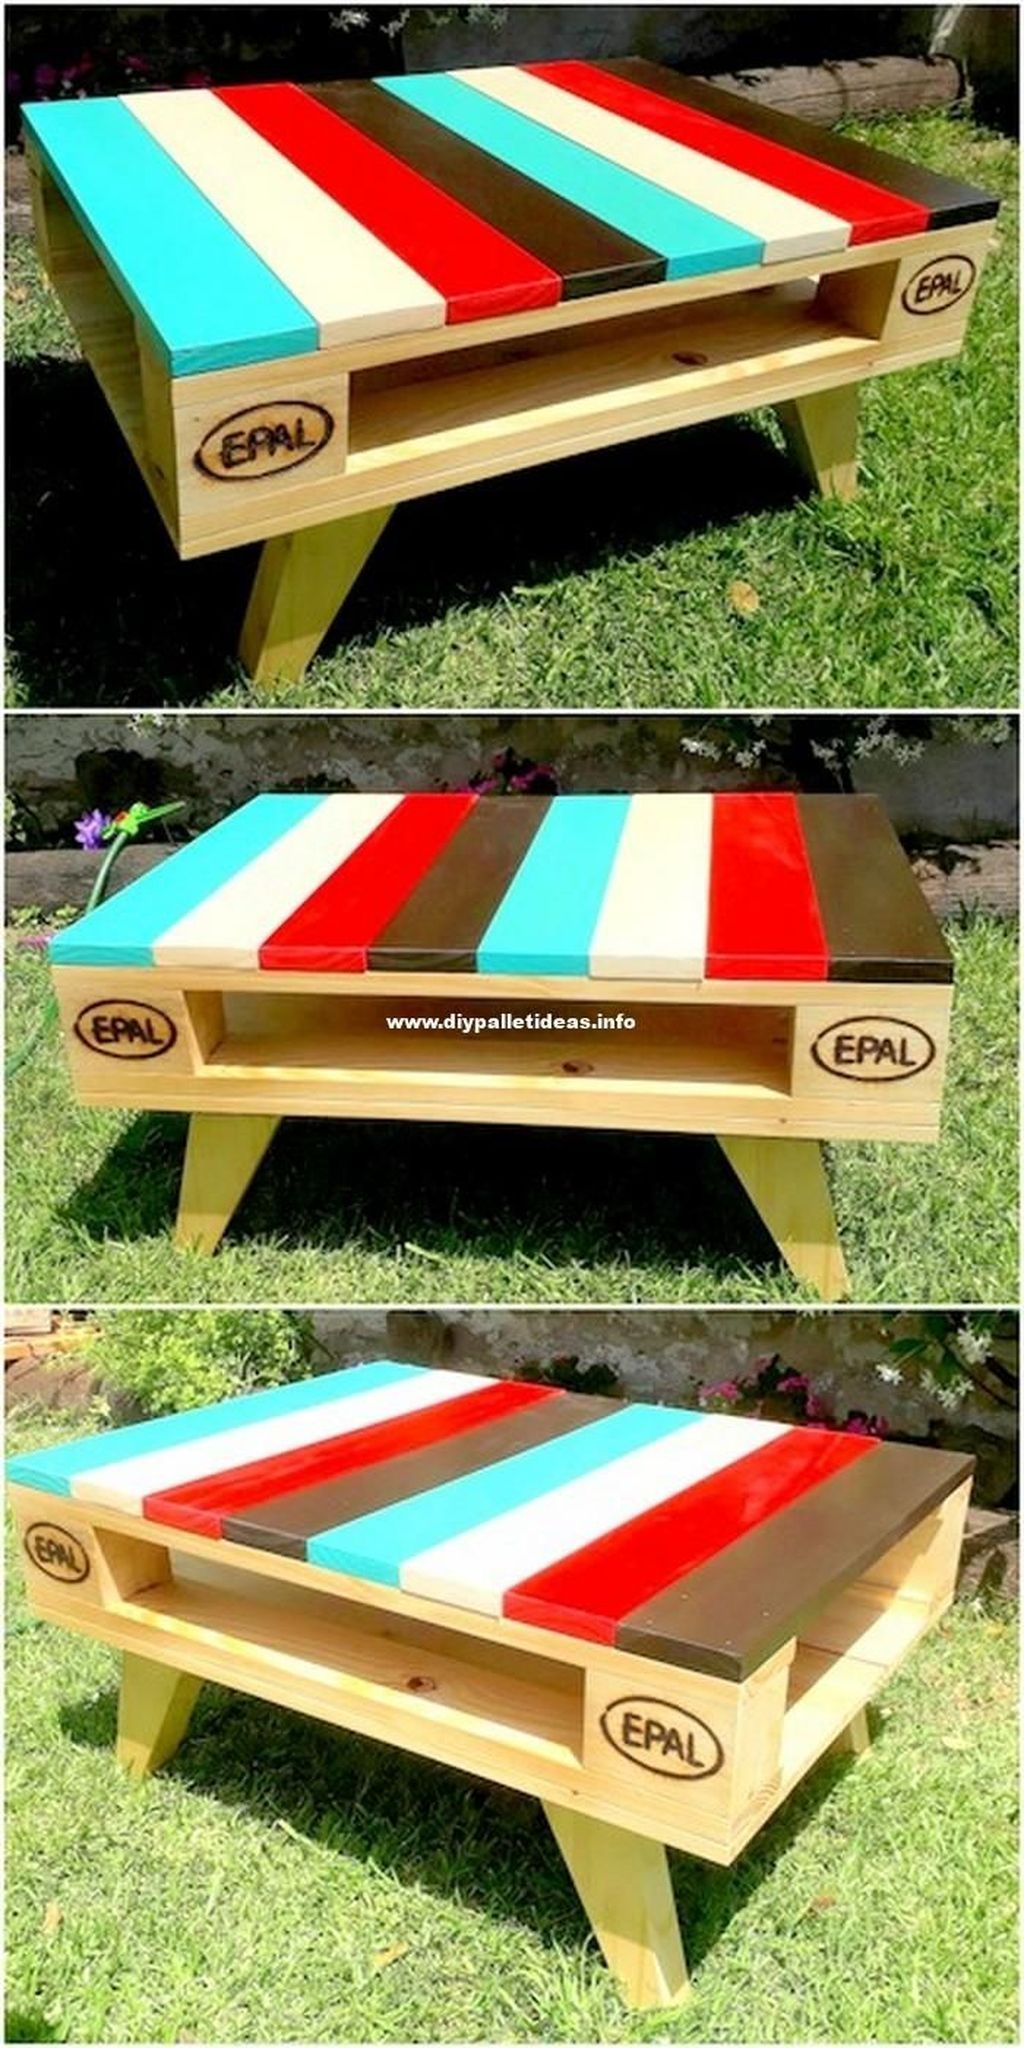 40 Unique Diy Pallet Furniture Project Ideas To Try Pallet Projects Furniture Diy Pallet Furniture Wooden Pallet Projects